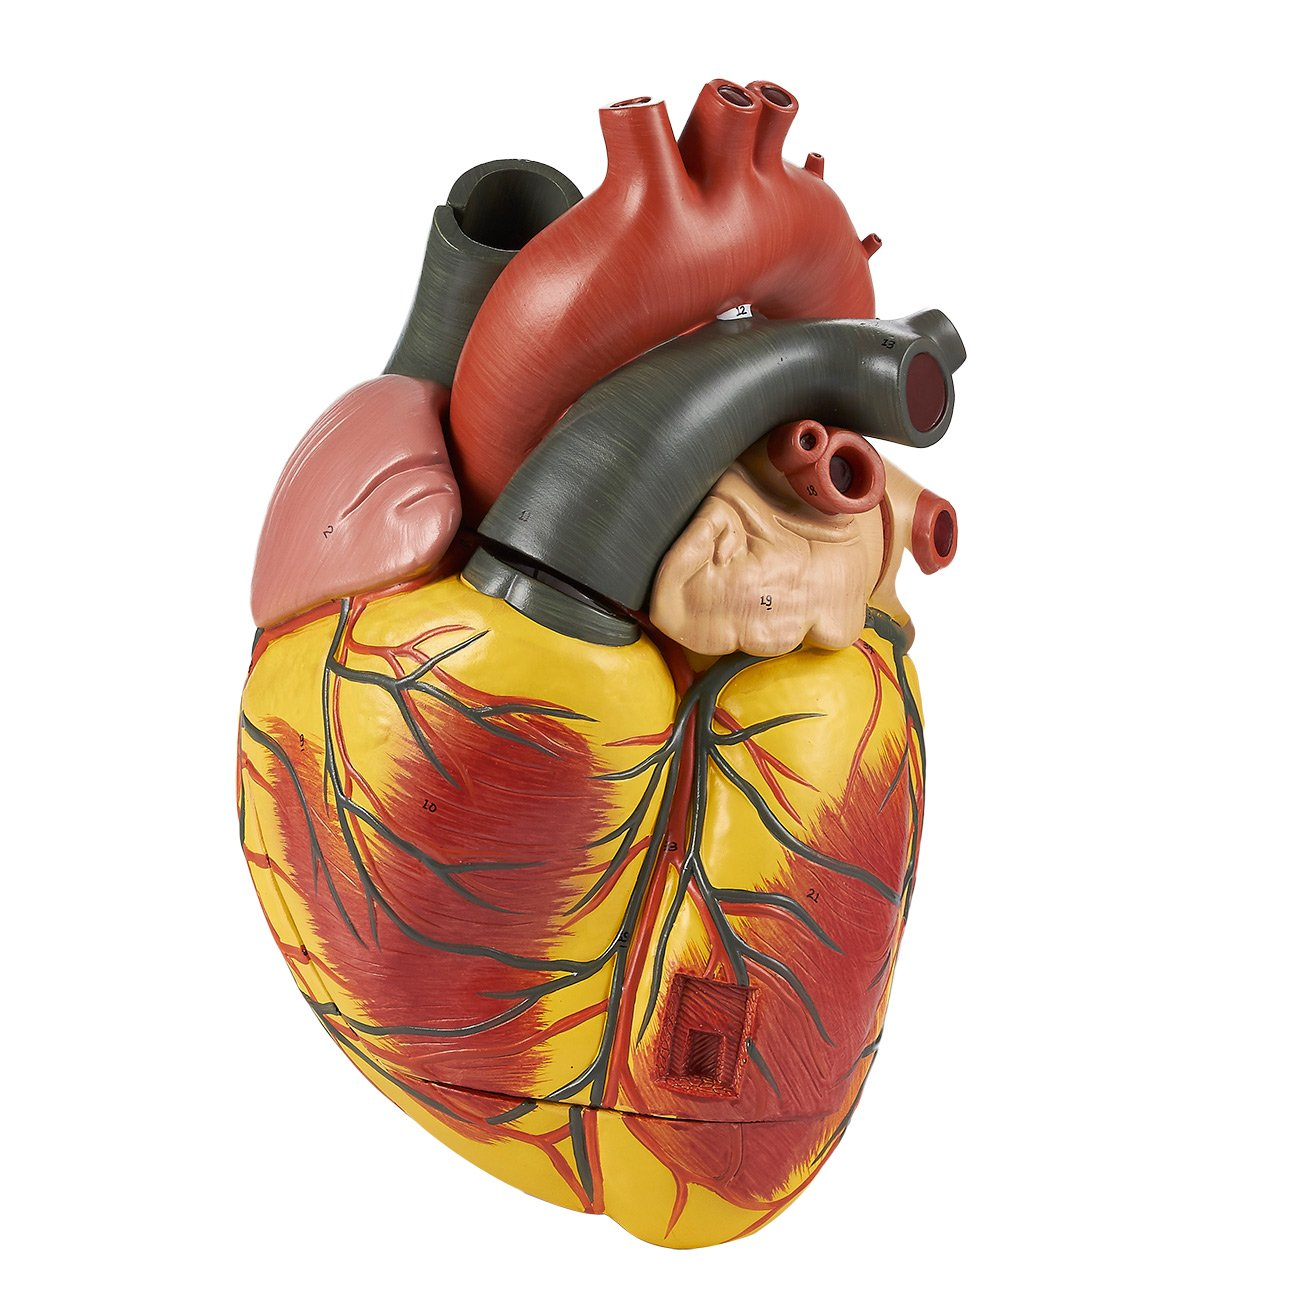 Human Heart Model - Large Heart Model for Science Classroom, Cardiology Anatomy Teaching Model, 3 Times Life Size, 11.2 x 9.2 x 8.2 inches Juvale